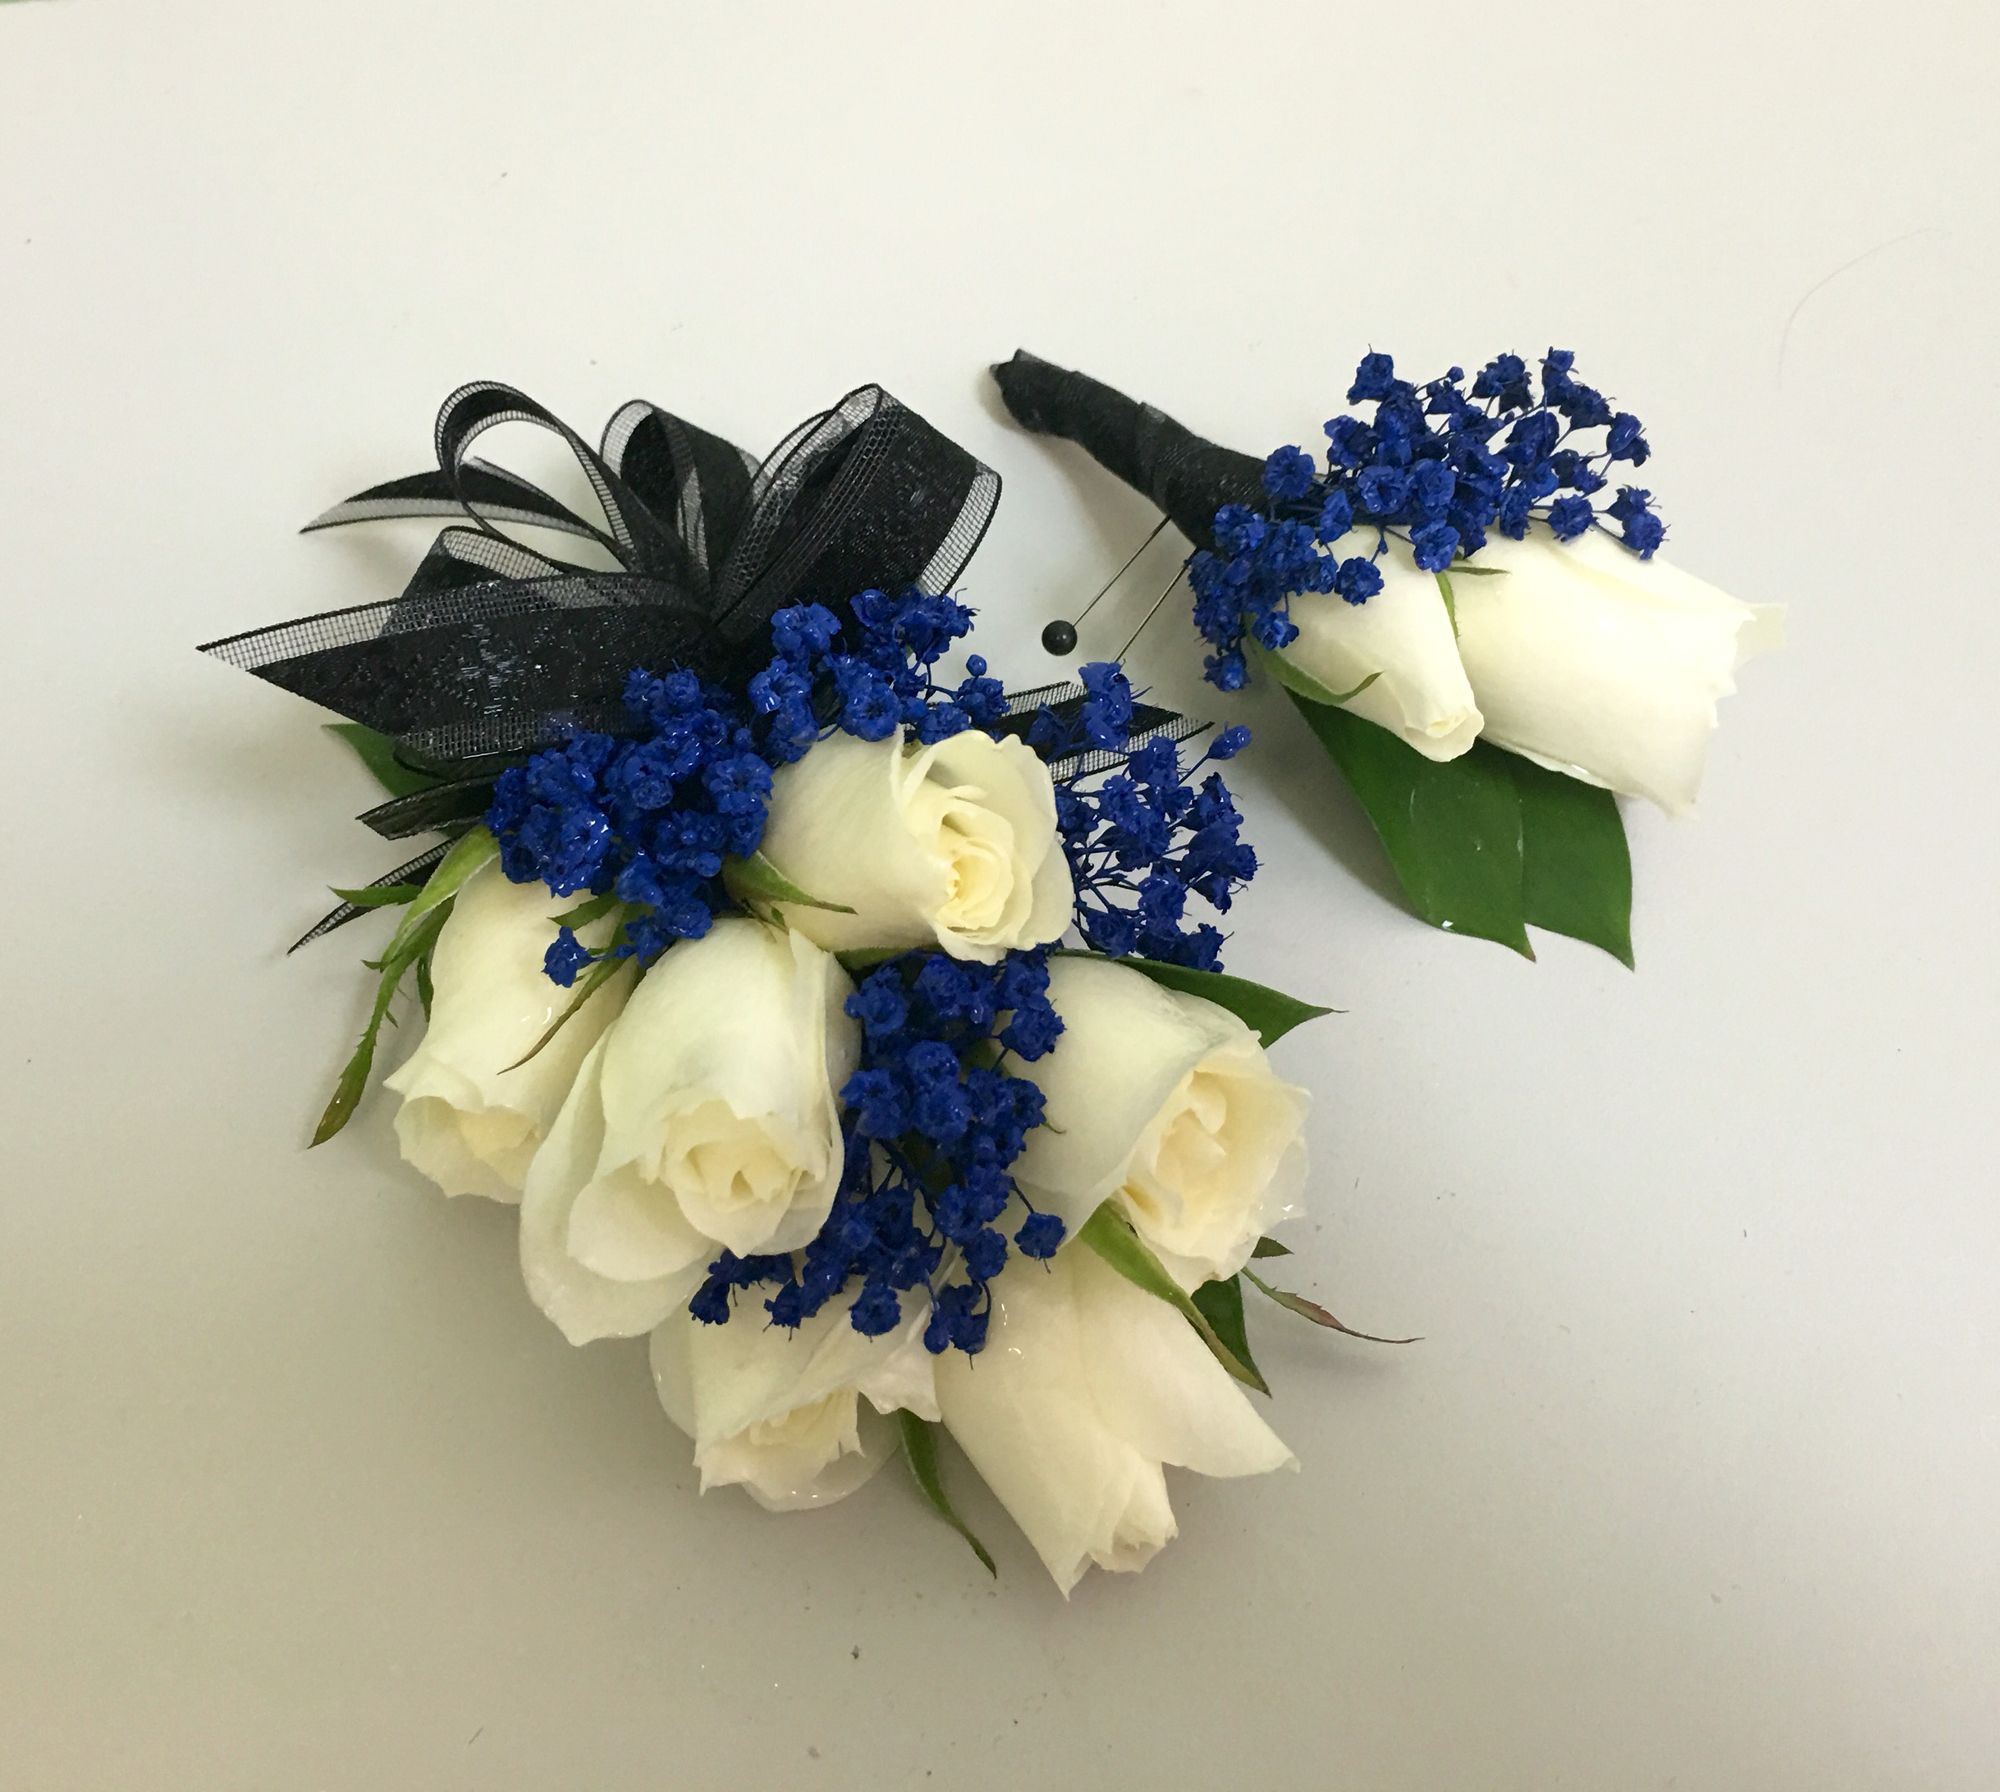 Wedding Flowers Corsage Ideas: Navy Blue And White Wrist Corsage And Boutonnière. Prom